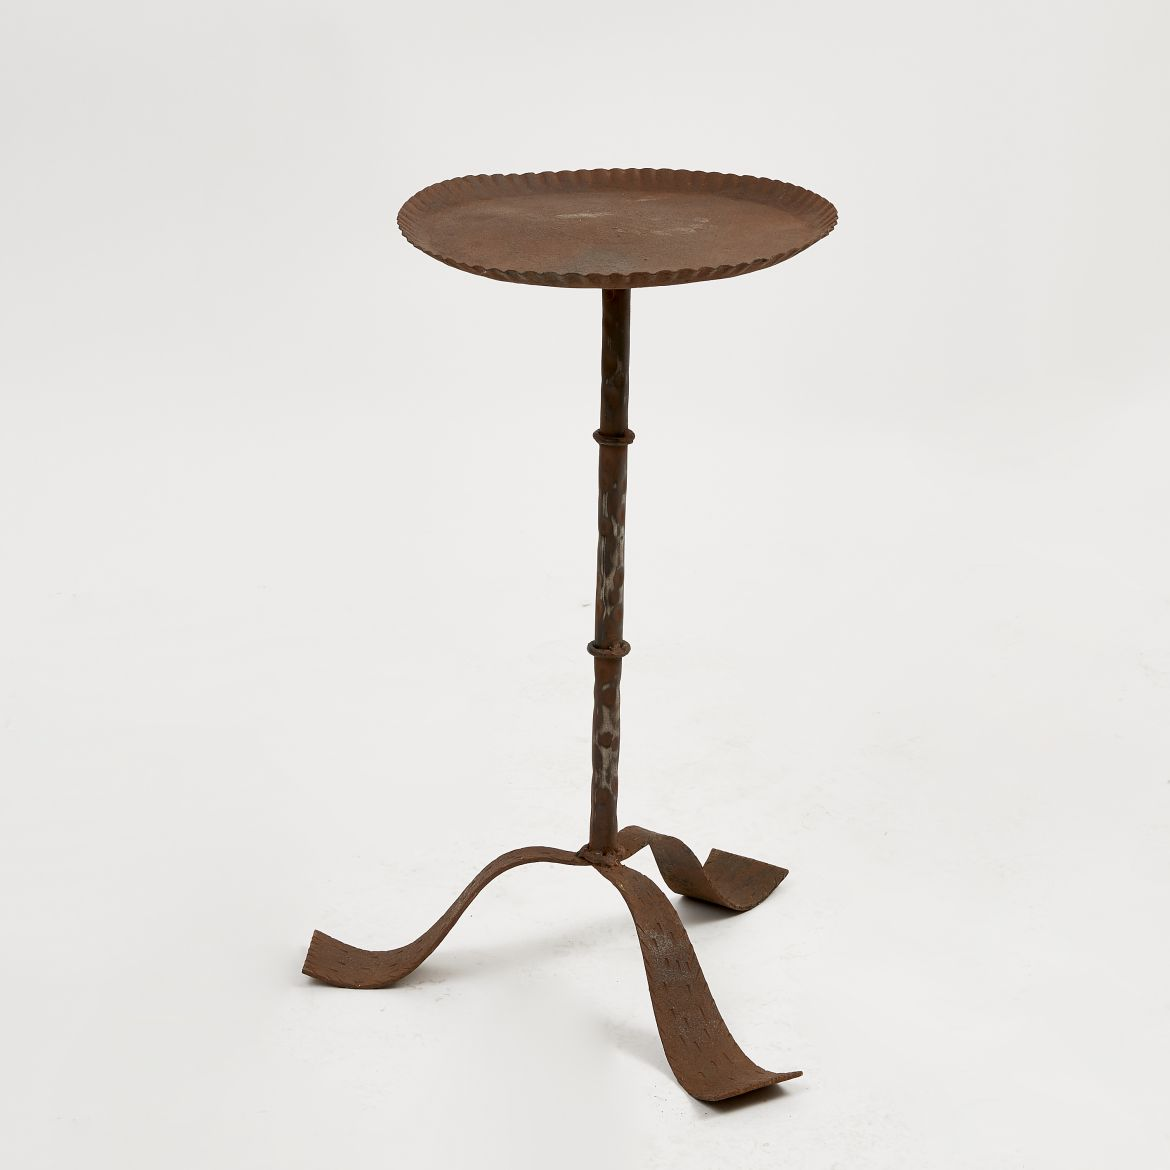 Spanish Martini Table with Dark Patina